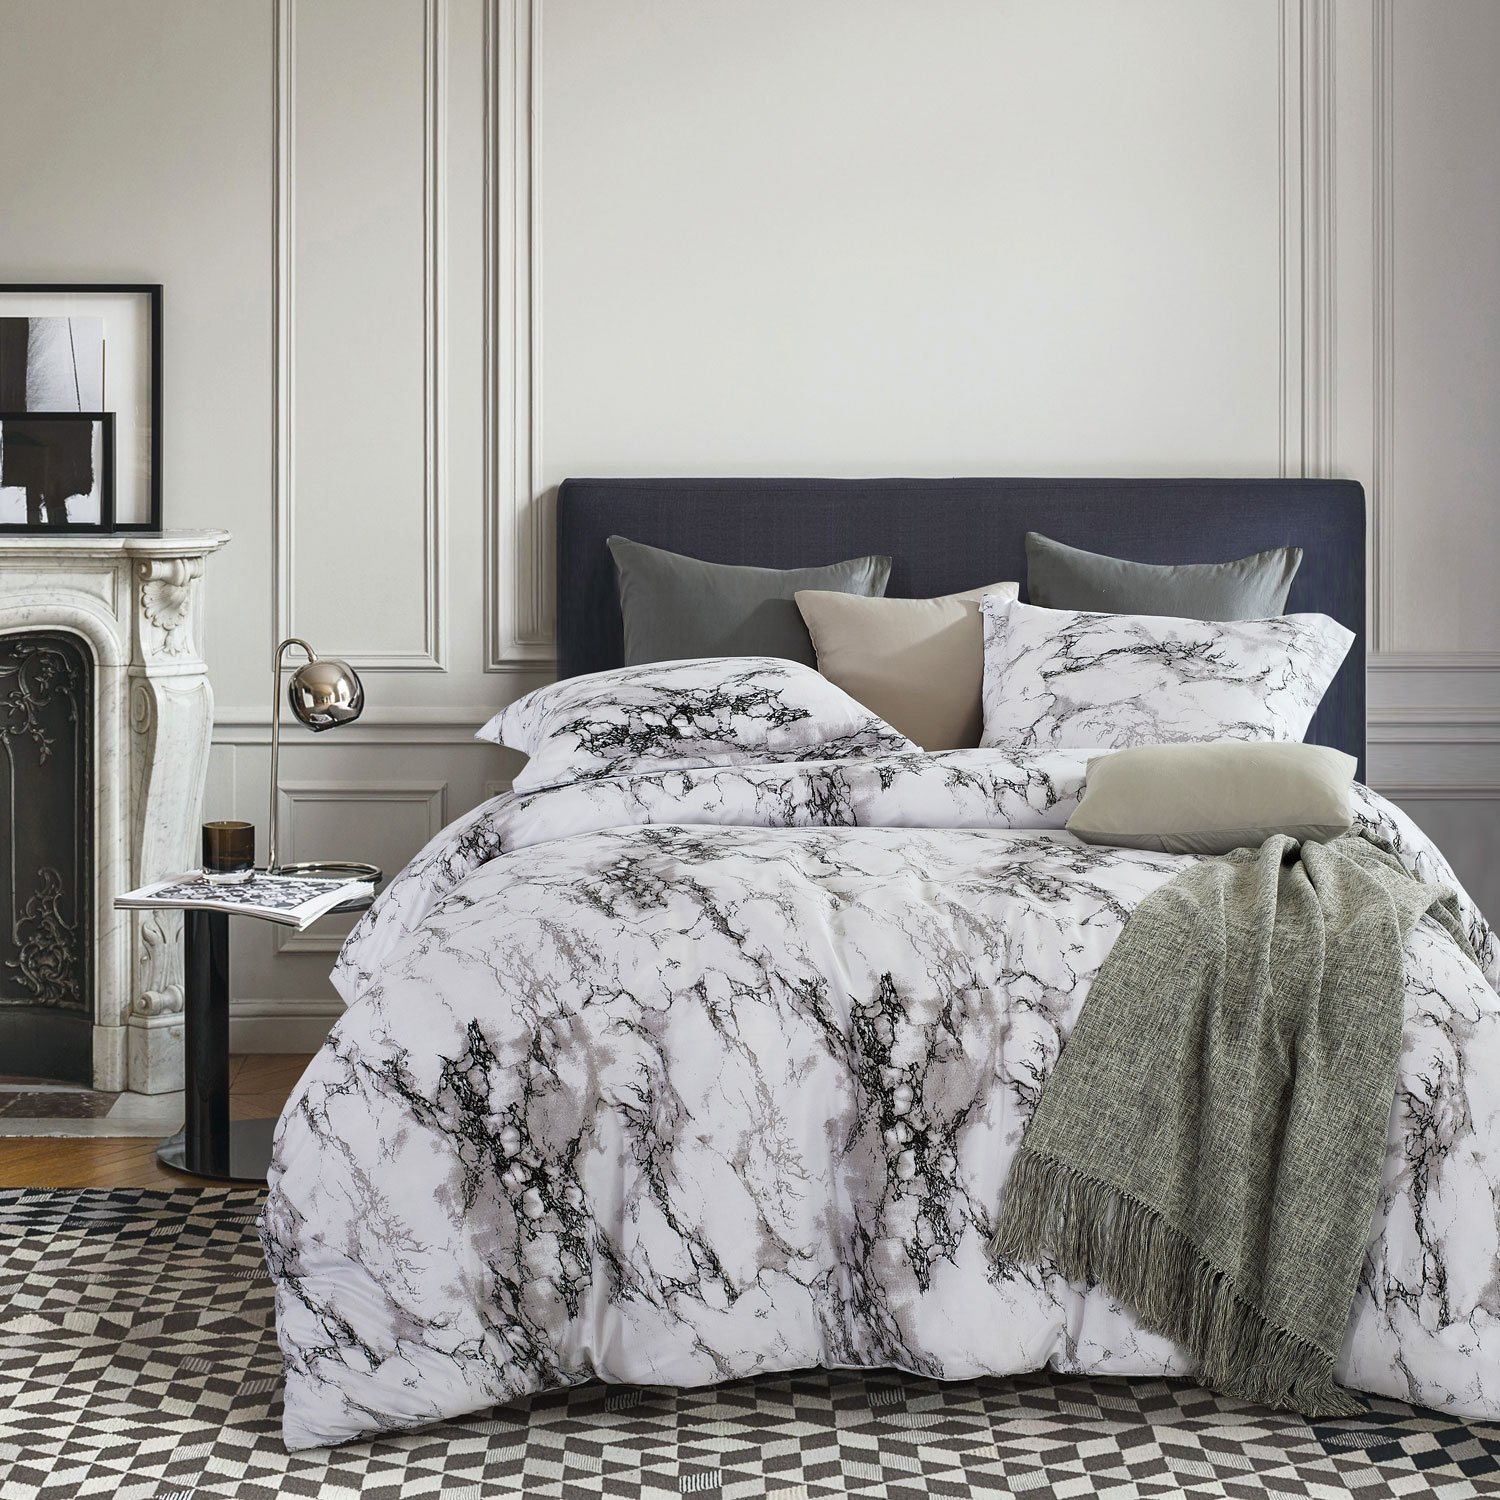 cf726db50fe0 Details about Wake In Cloud - Marble Comforter Set Queen